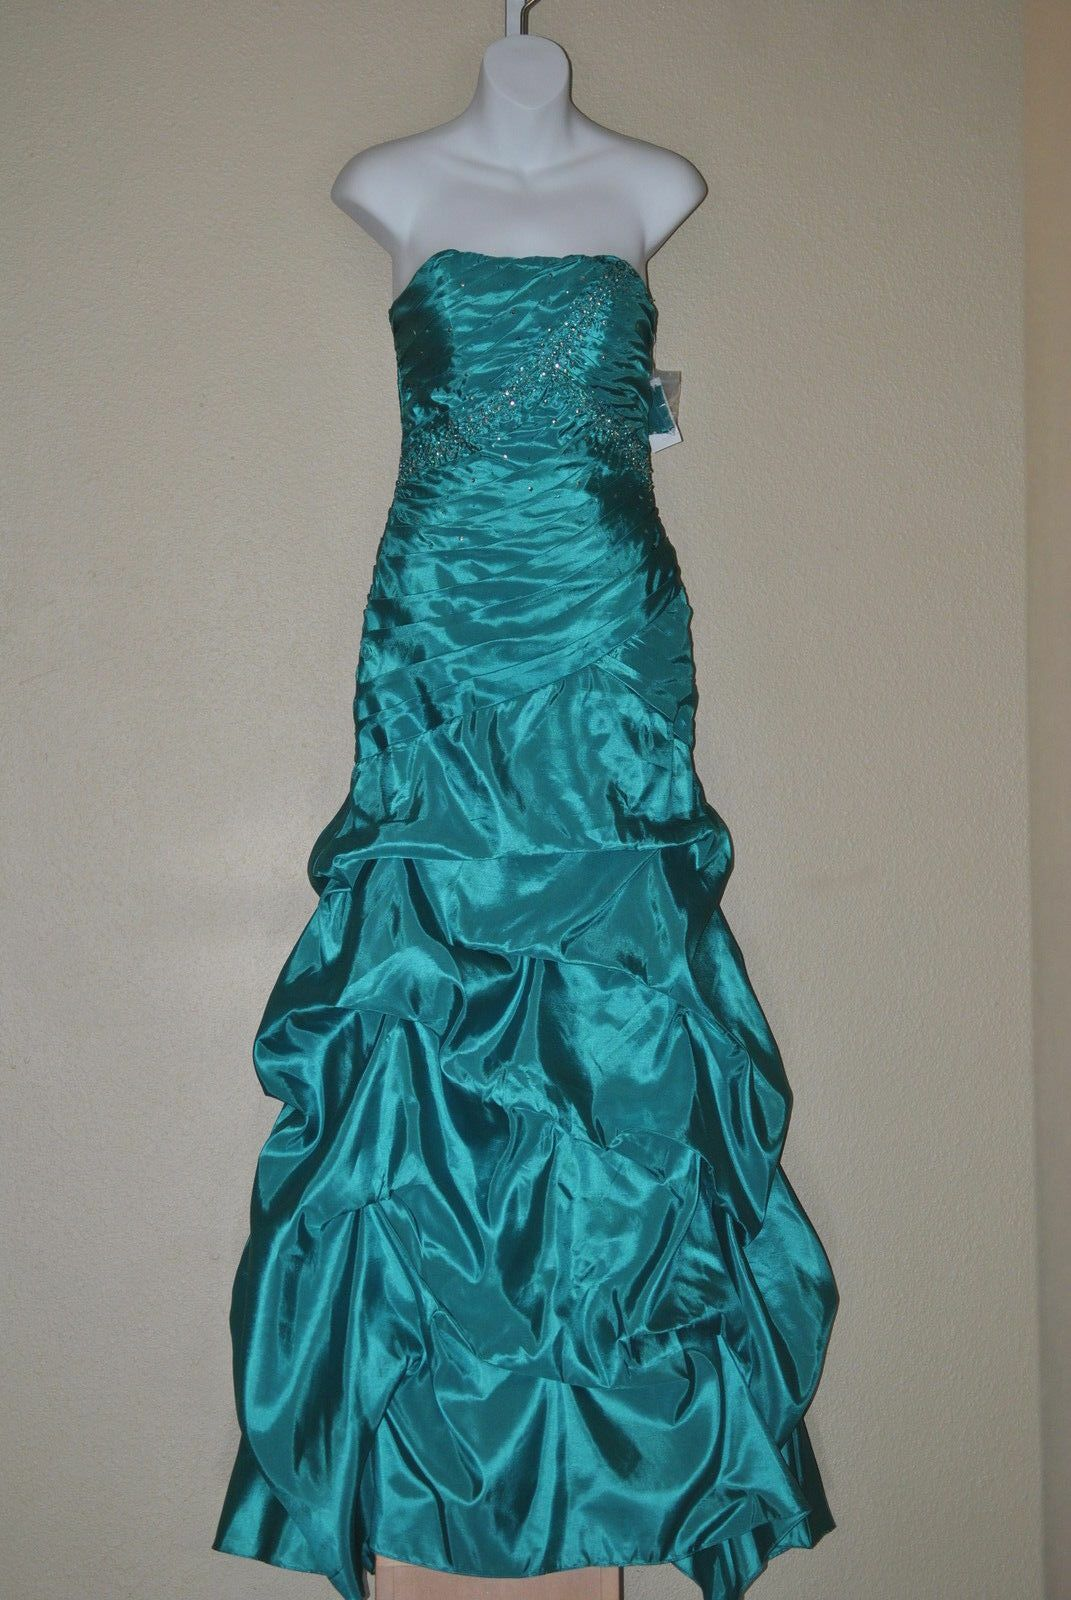 Jump Apparel Prom Pageant Formal Sweetheart Lace Up Dress Ball Gown, 5 6